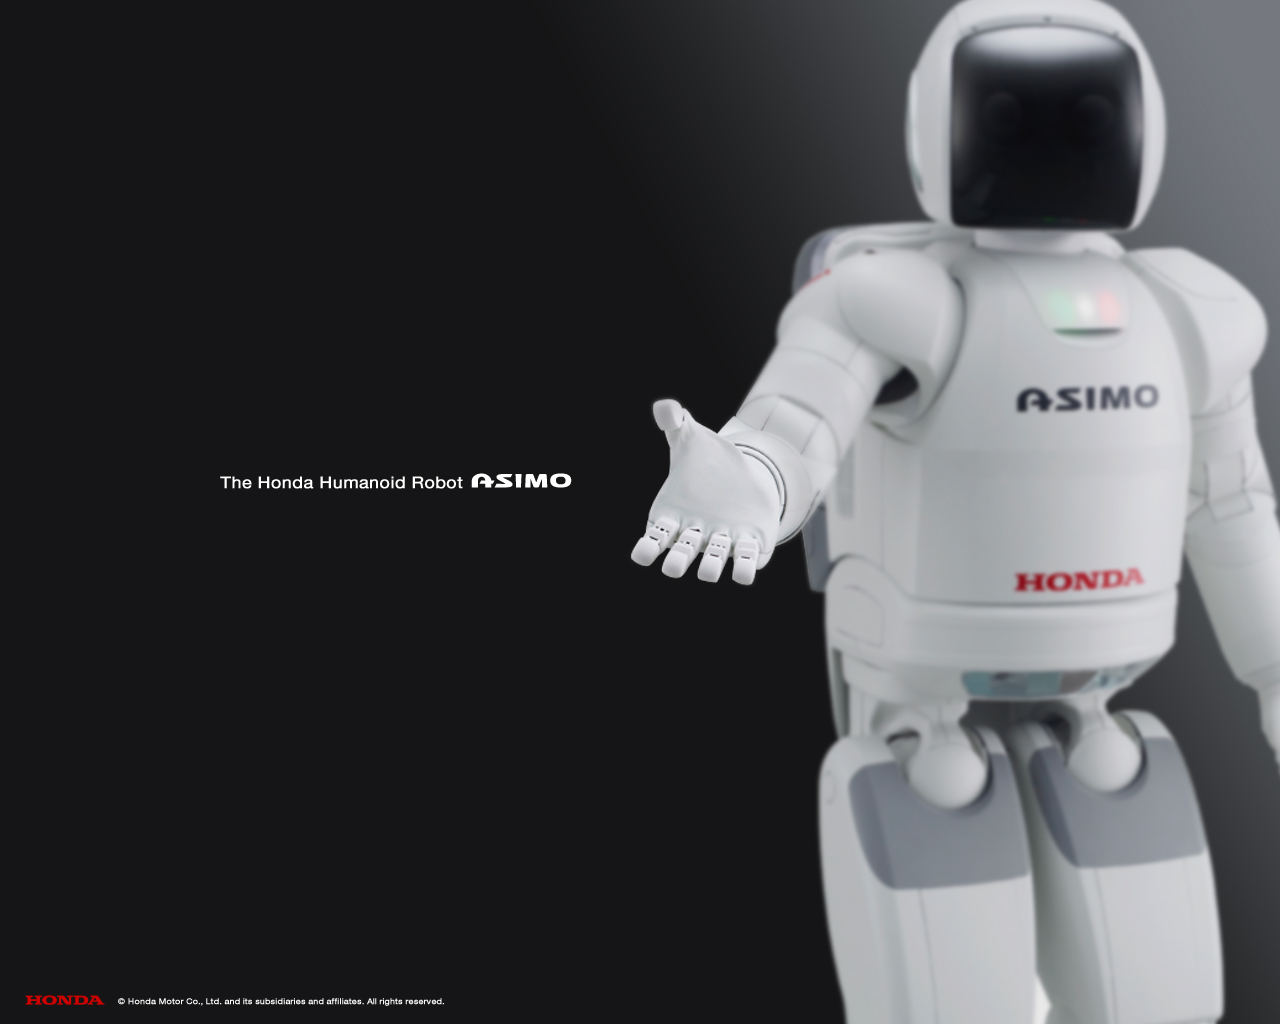 3d Wallpaper Windows 8 1 Asimo Downloads Asimo Innovations By Honda